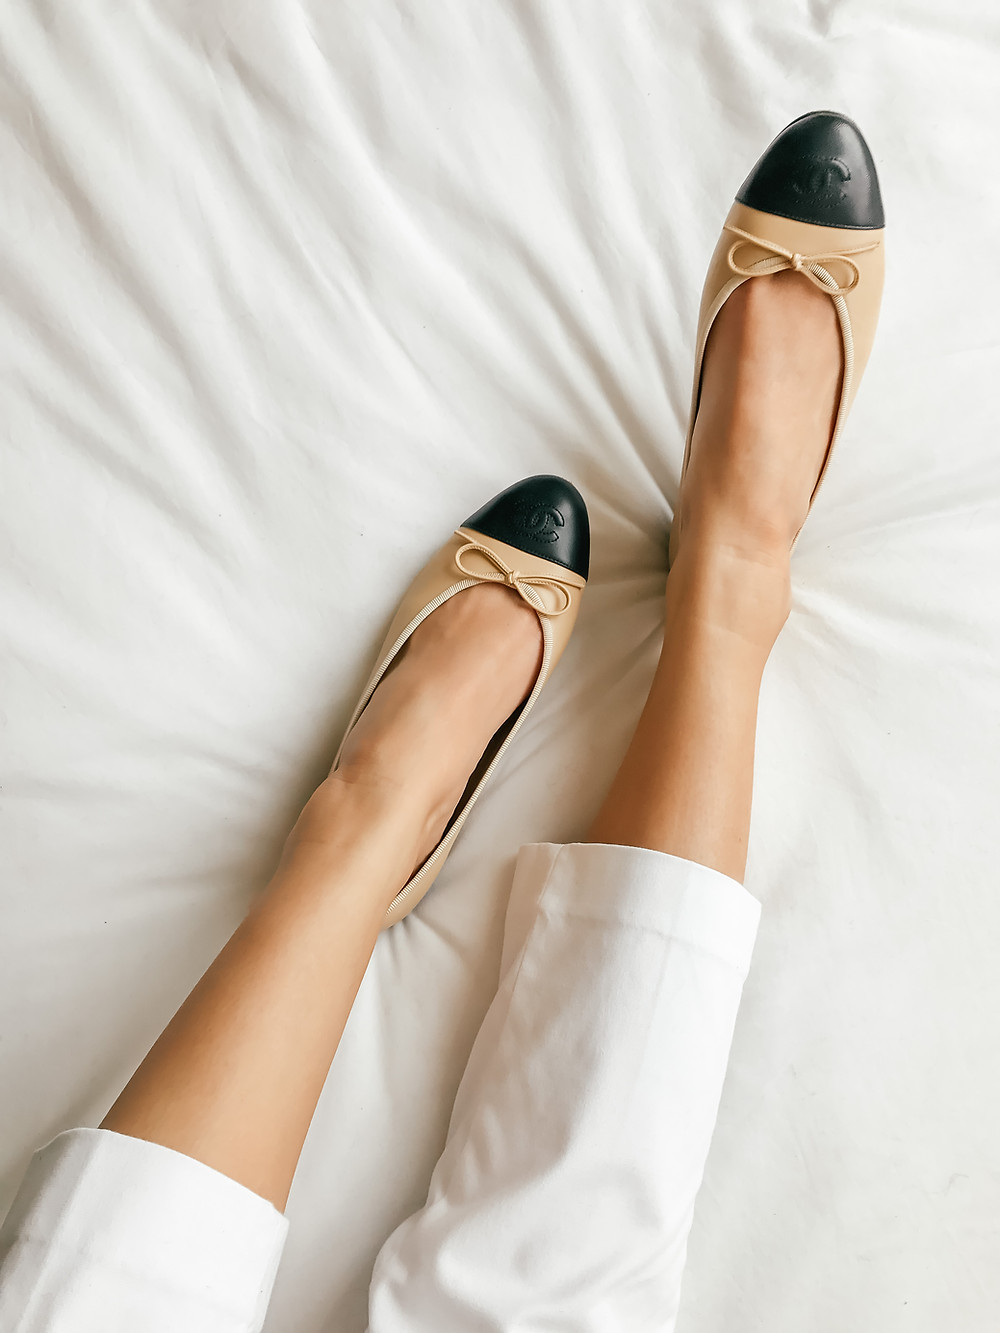 Classic Flats | CHANEL Two-Tone Espadrilles & Ballerinas Review | A Style Alike